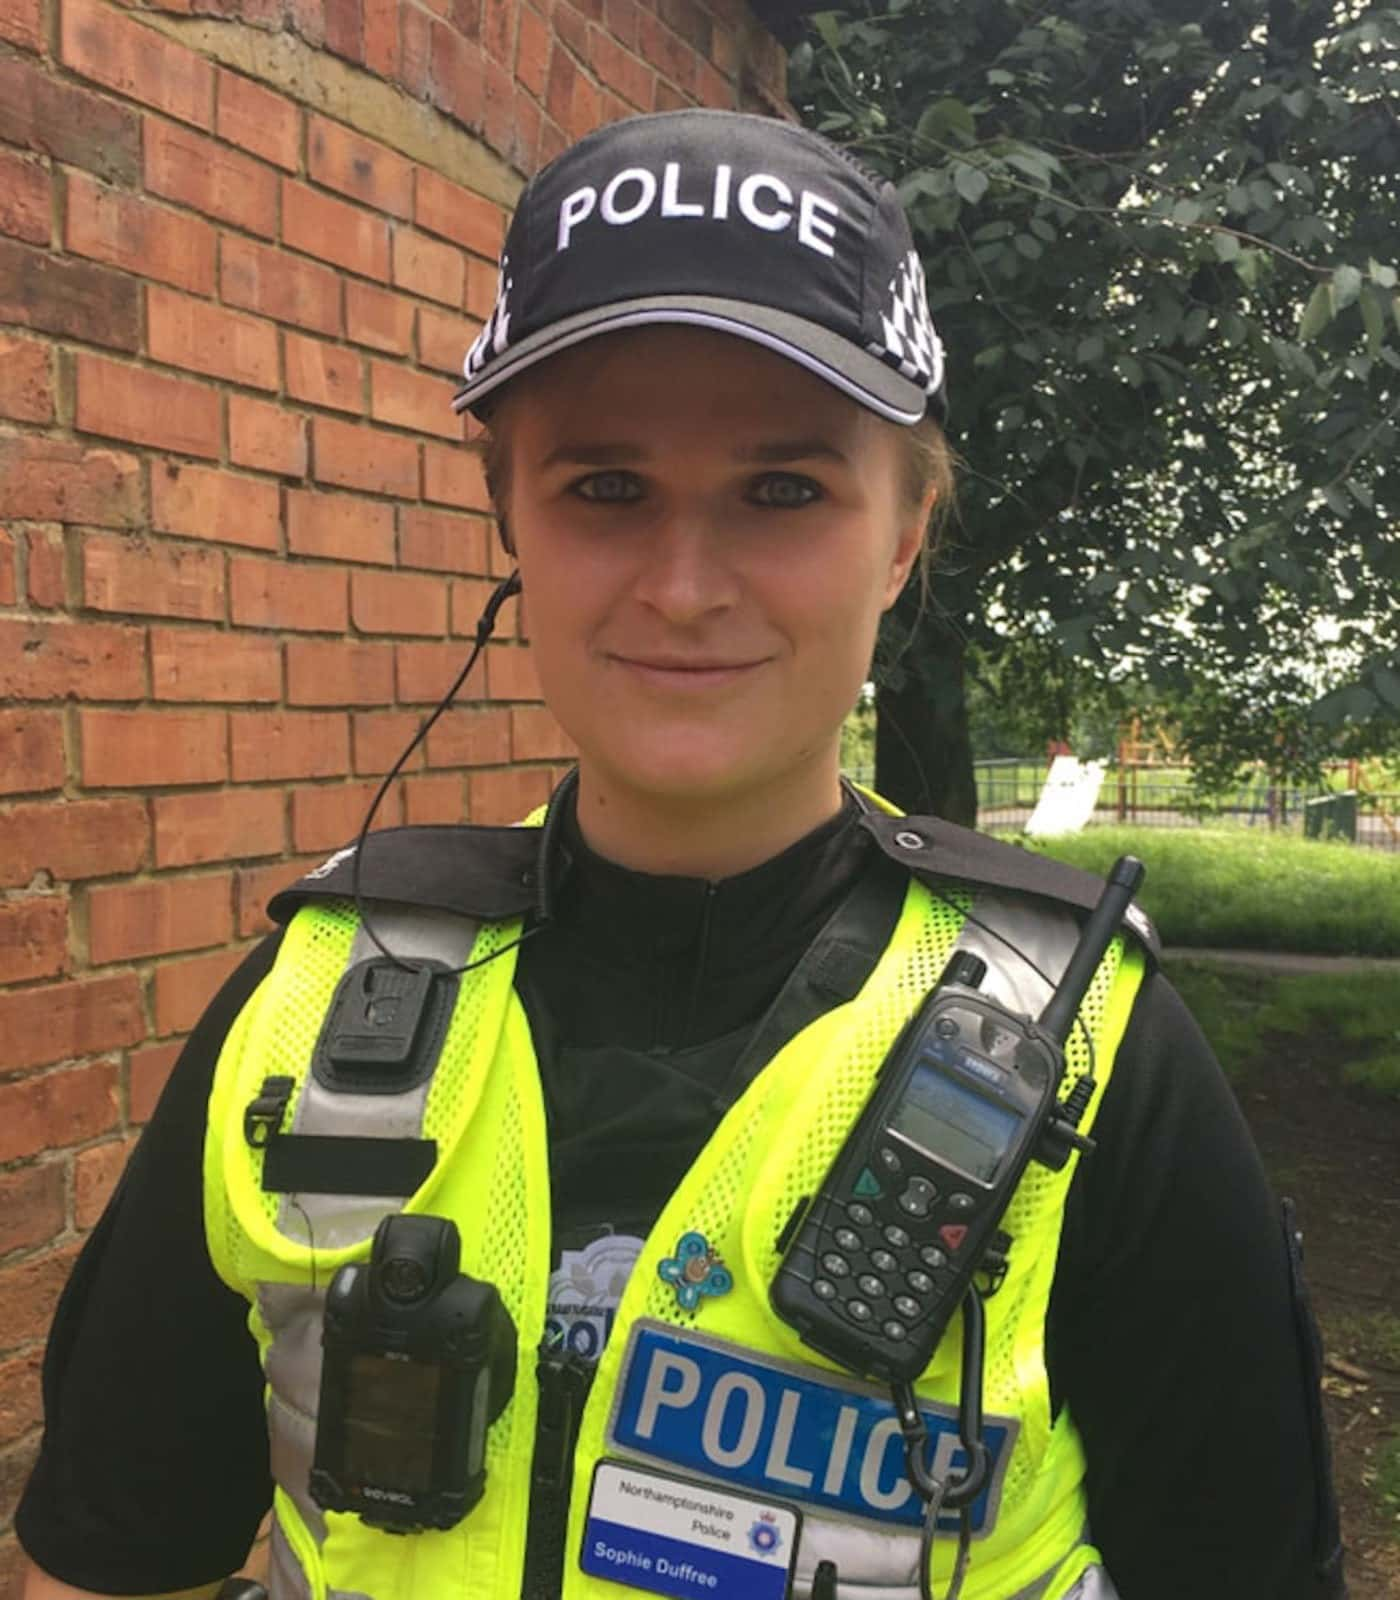 Sophie Duffree - Police Officer